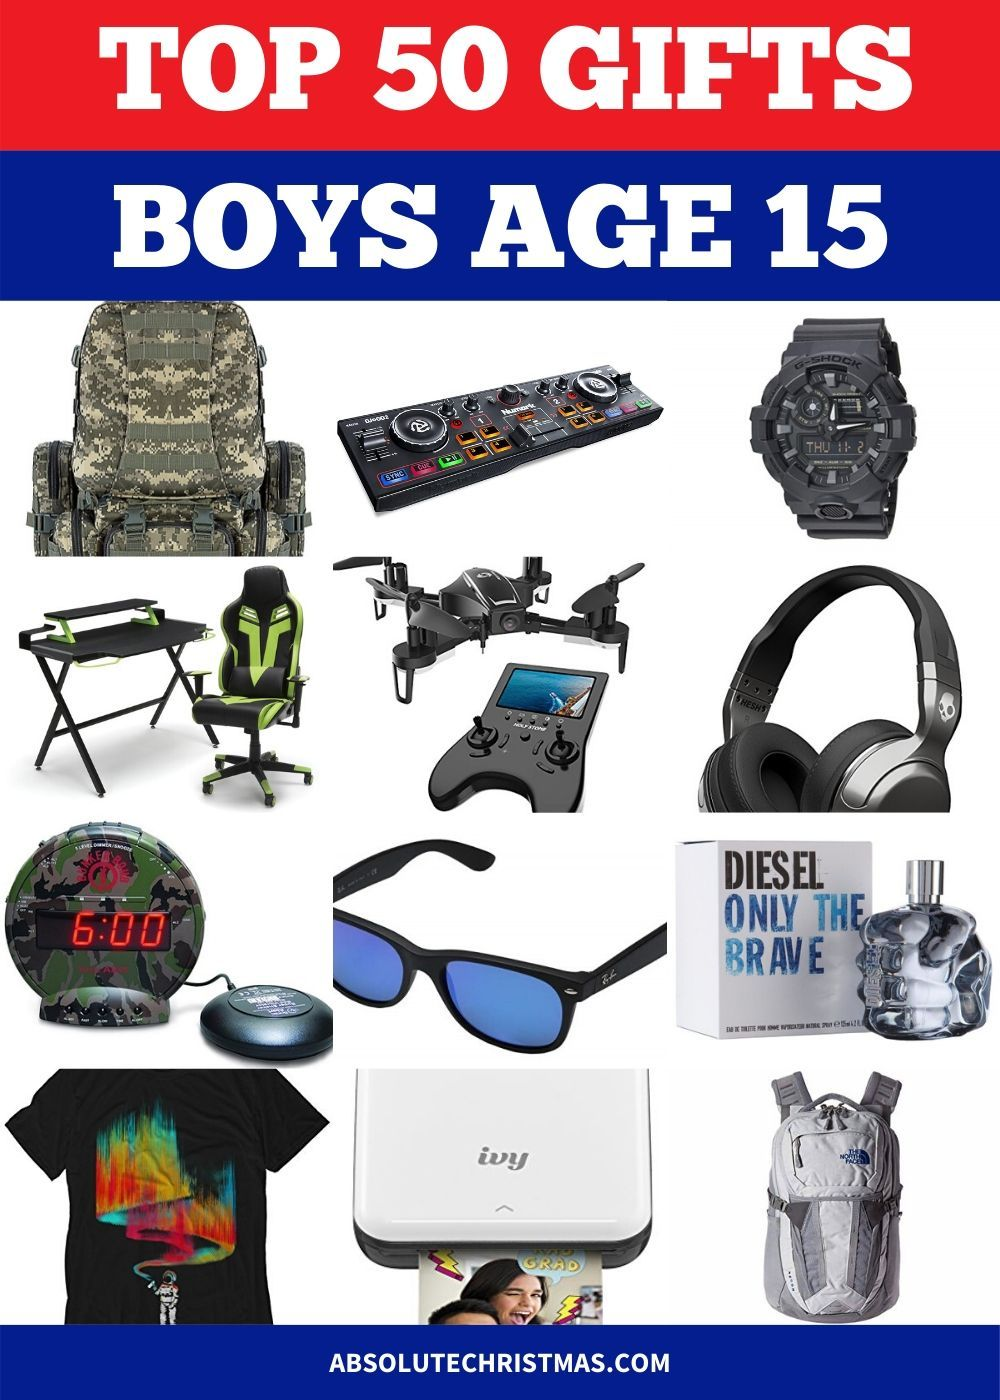 101 Best Gifts For 15 Year Old Boys 2020 15 Year Old Boy 15 Year Old Christmas Gifts Christmas Gifts For Boys